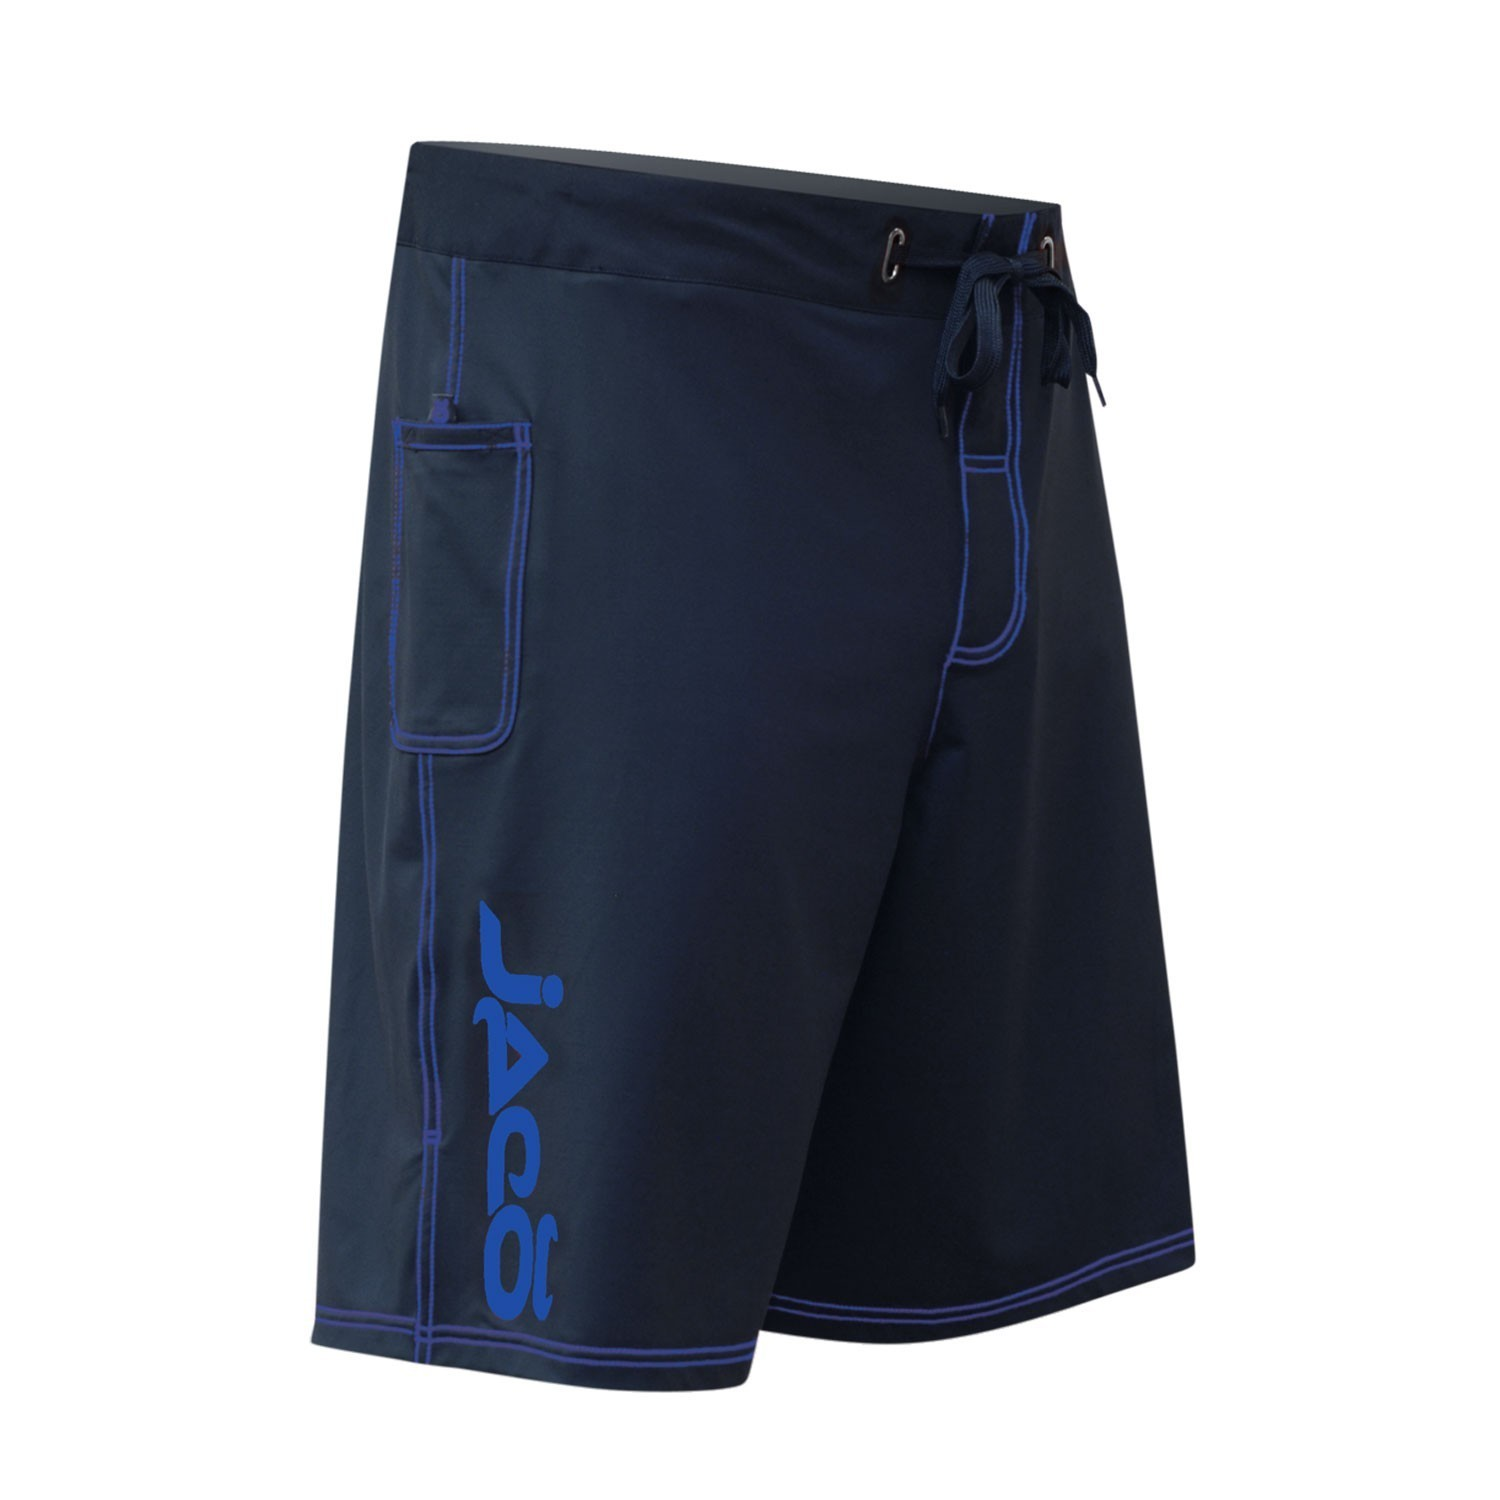 Hybrid Training Short (Black/Cobalt Blue)